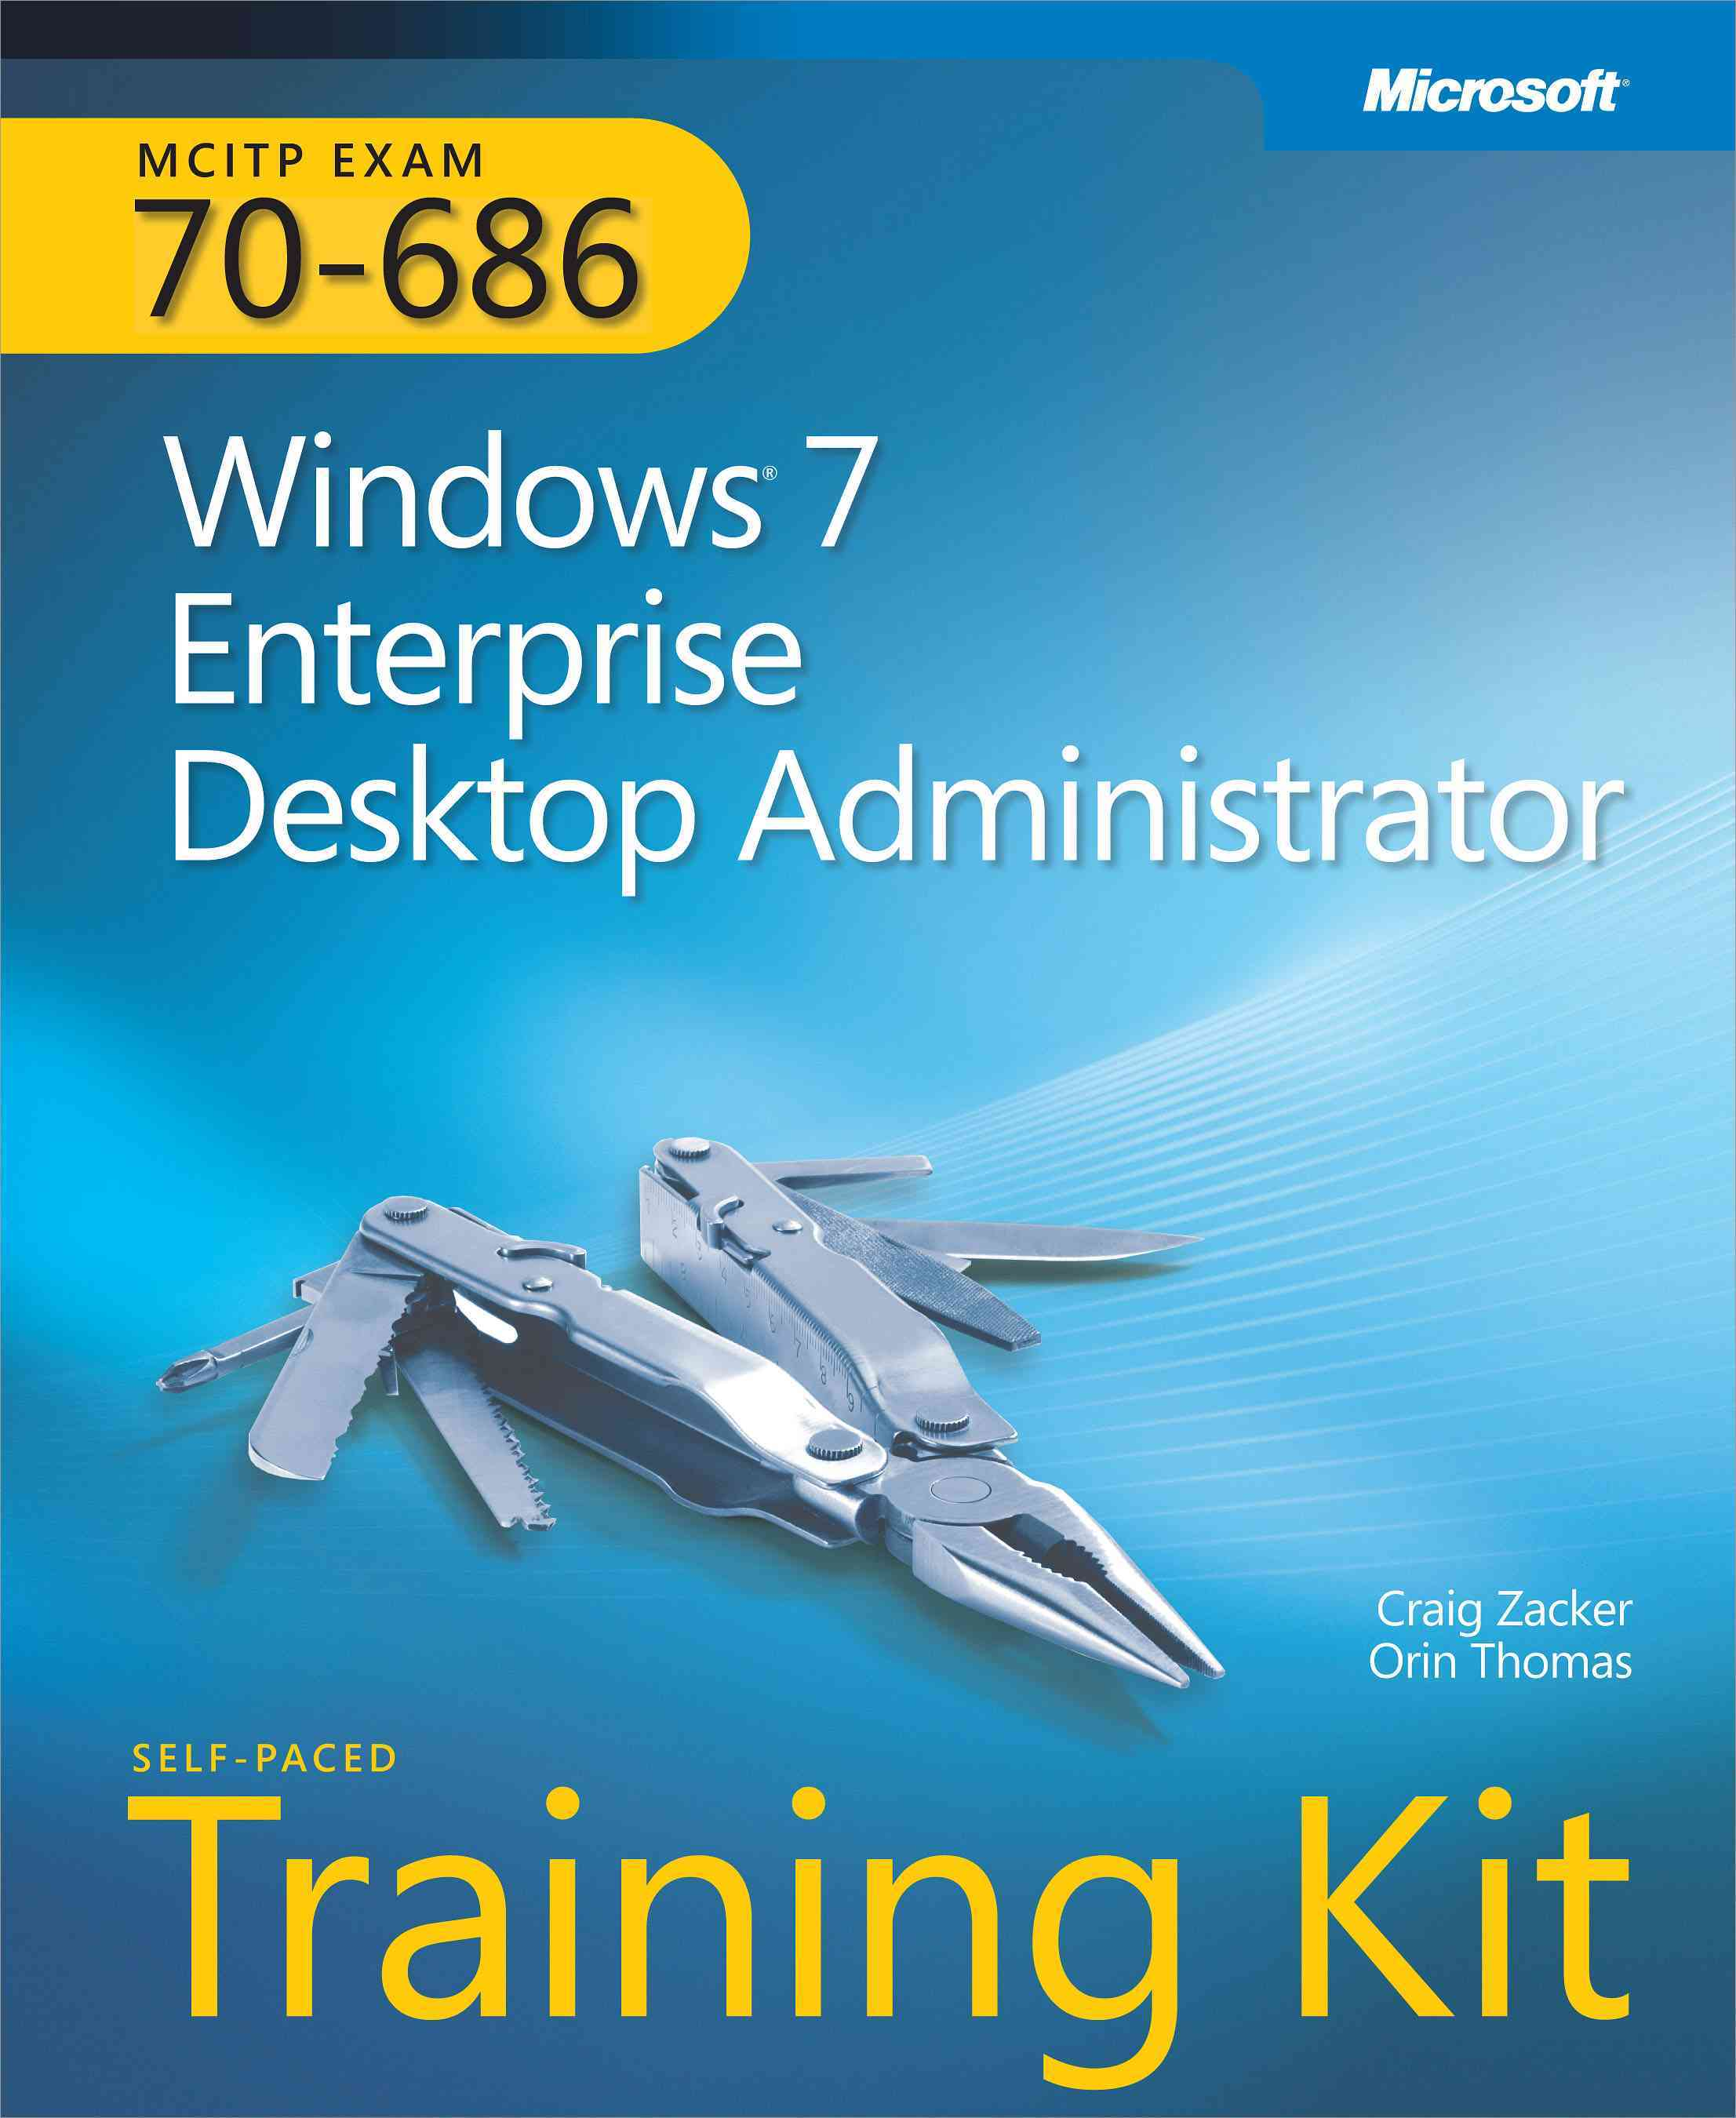 Mcitp Self-paced Training Kit (Exam 70-686): Windows 7 Desktop Administrator